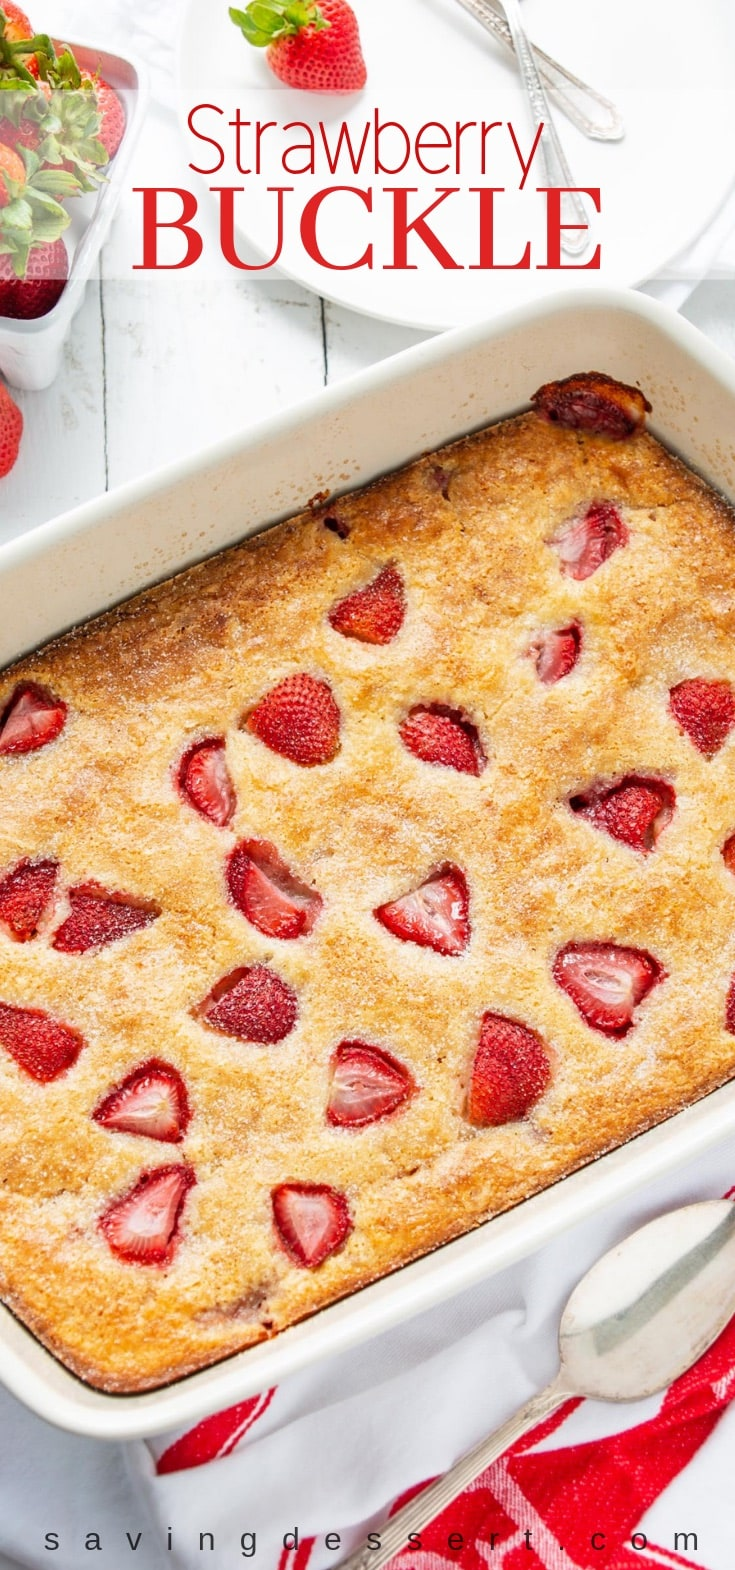 Easy Strawberry Buckle - made with just a few pantry ingredients and loads of fresh strawberries, this tasty custardy-cake comes together in minutes. #strawberry #buckle #dessert #baking #cobbler #easydessert